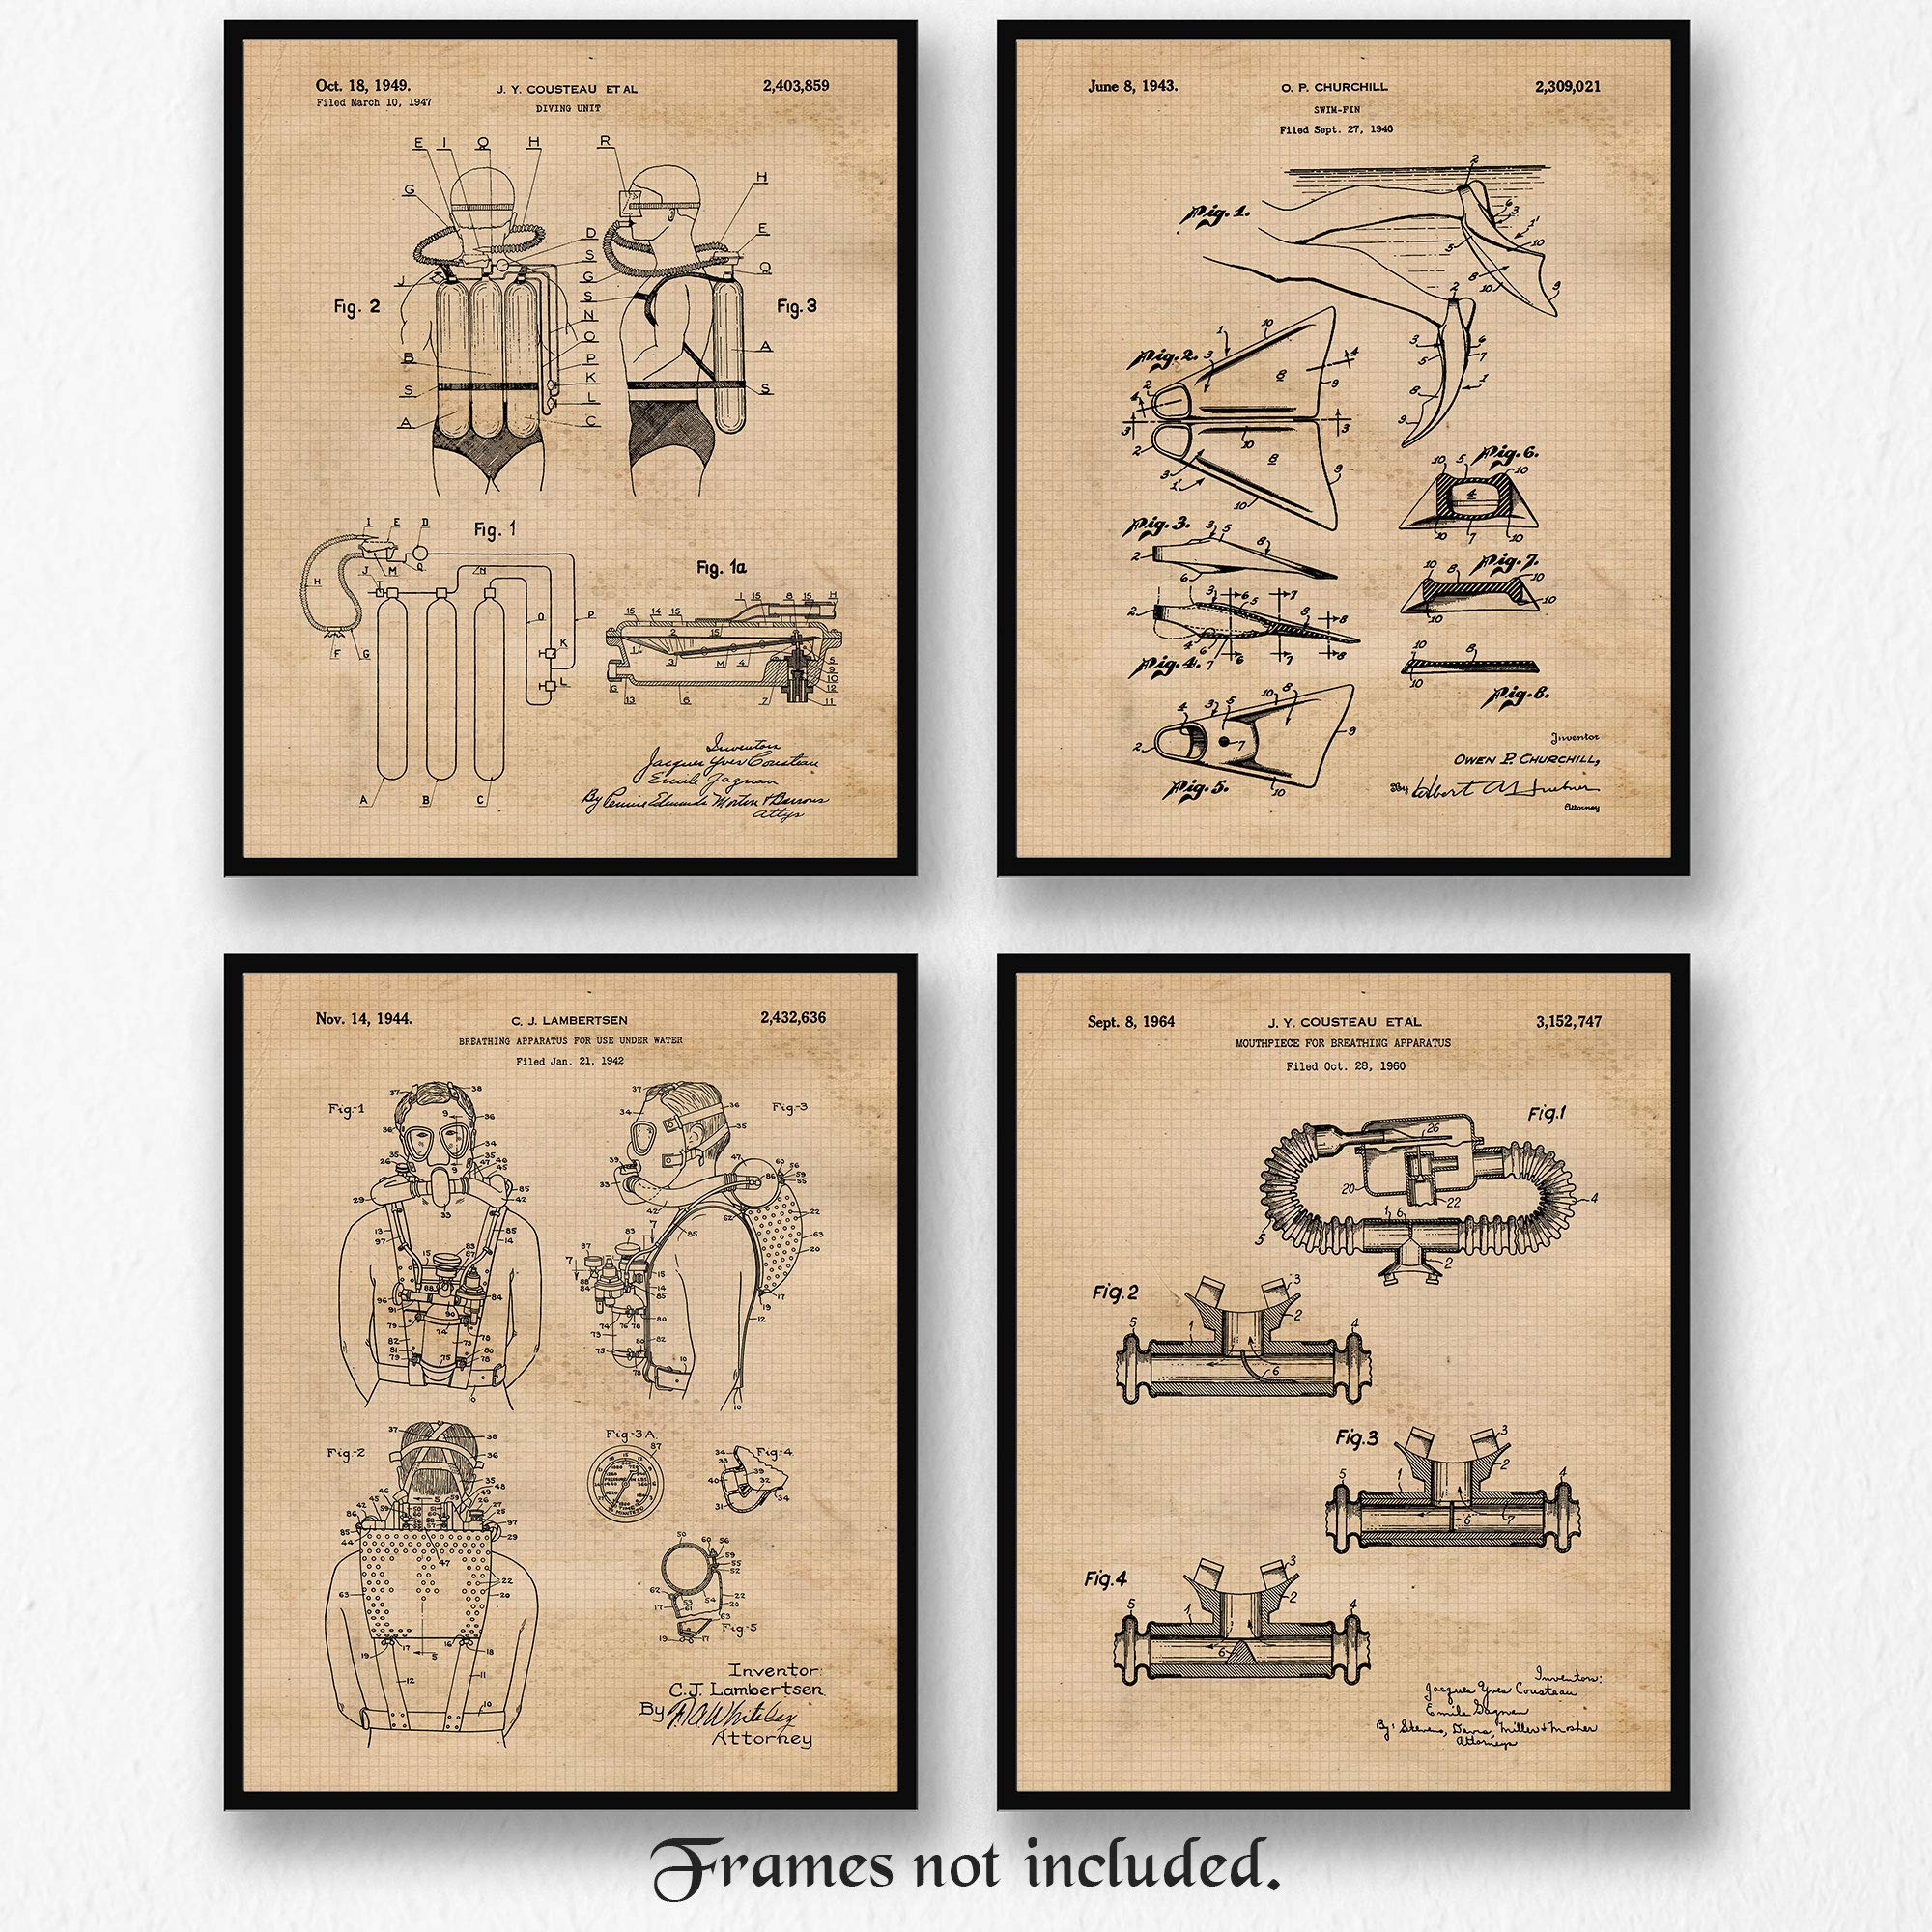 Original Scuba Patent Art Poster Prints, Set of 4 (8x10) Unframed Photos, Great Wall Art Decor Gifts Under 20 for Home, Office, Garage, Shop, Man Cave, Student Diver, Teacher, Coach, Diving Fan by Stars by Nature